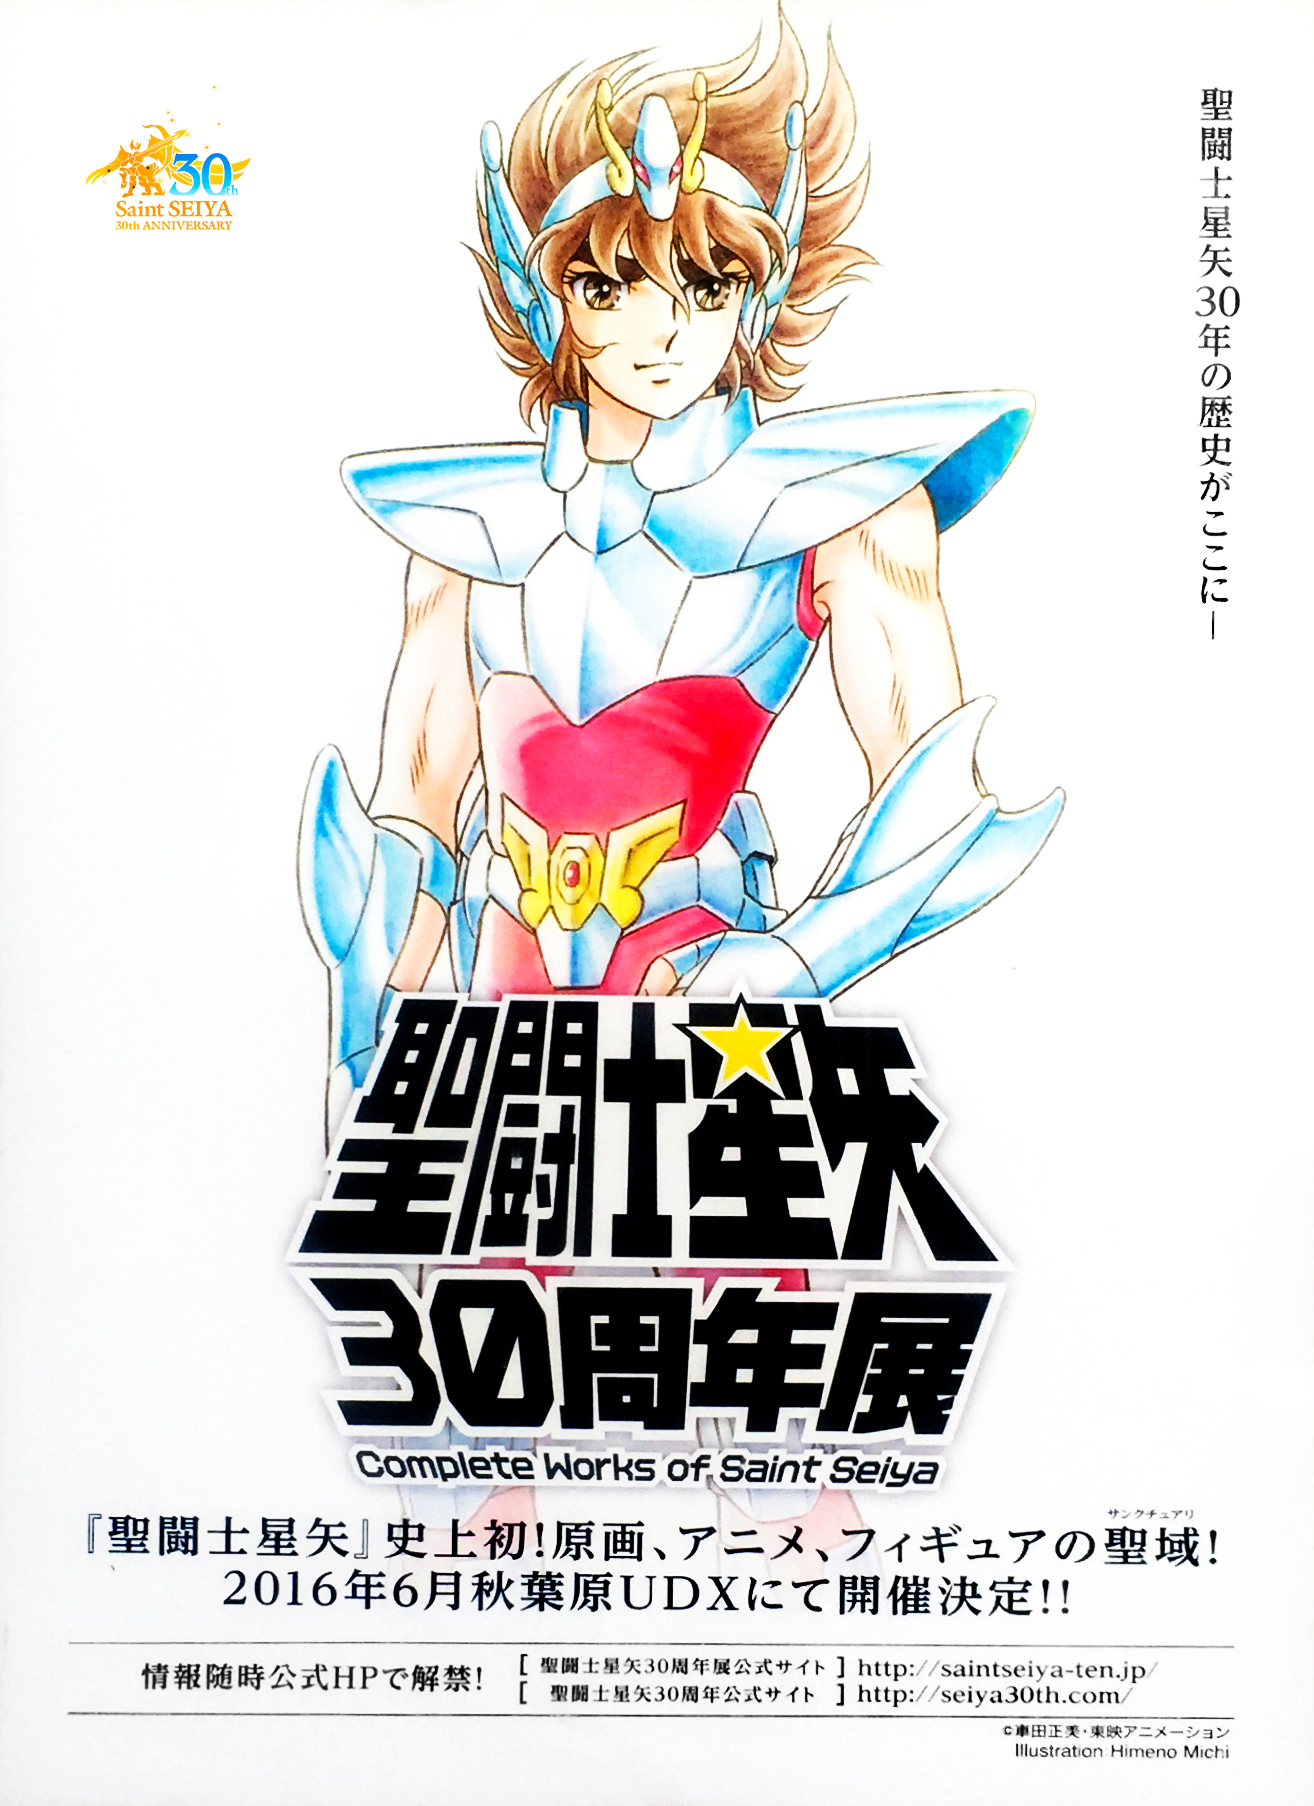 Complete Works of Saint Seiya